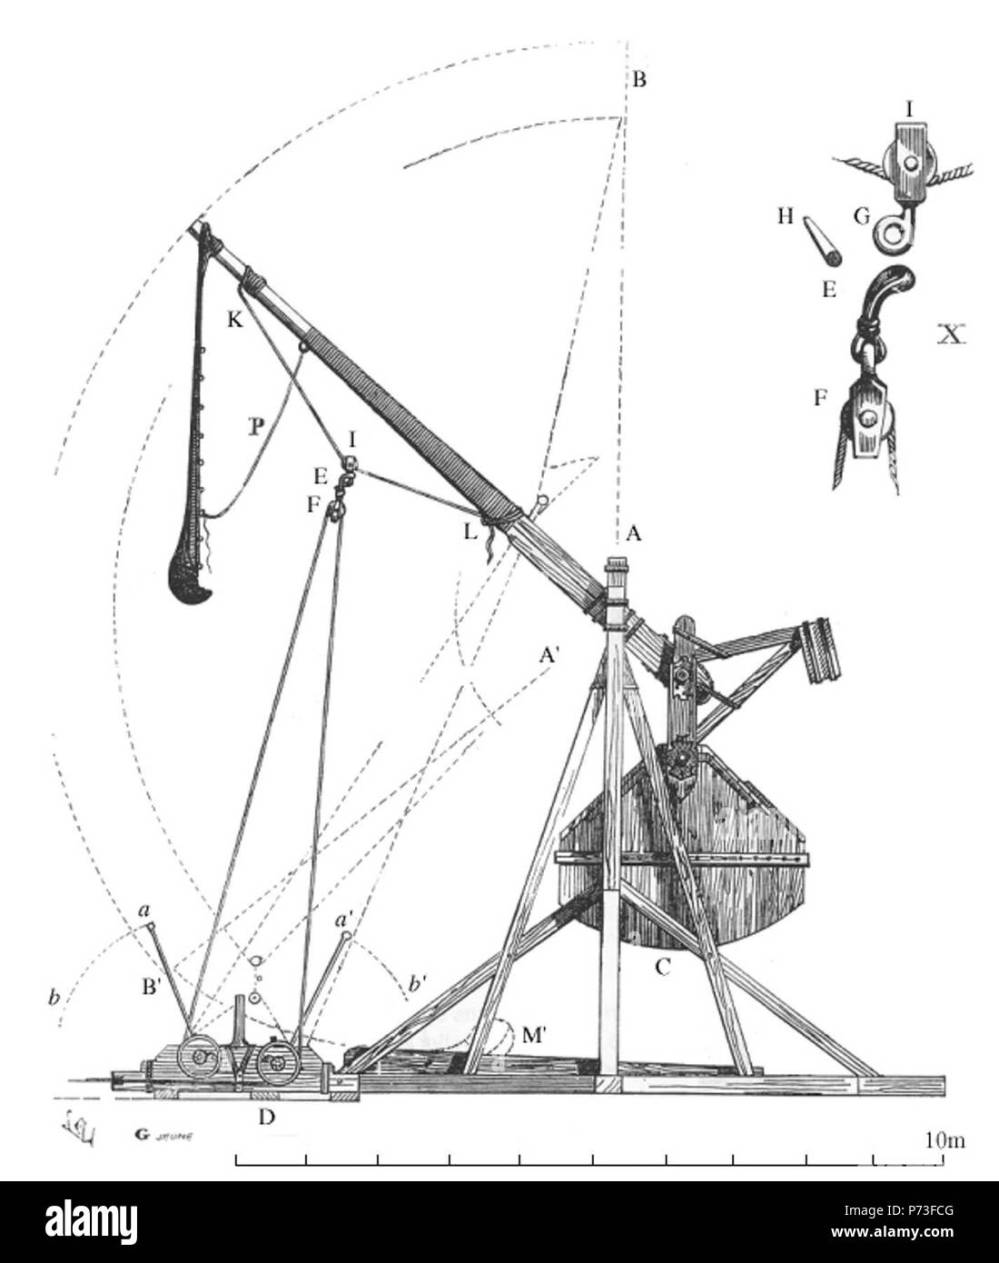 medium resolution of side view of counterweight trebuchet